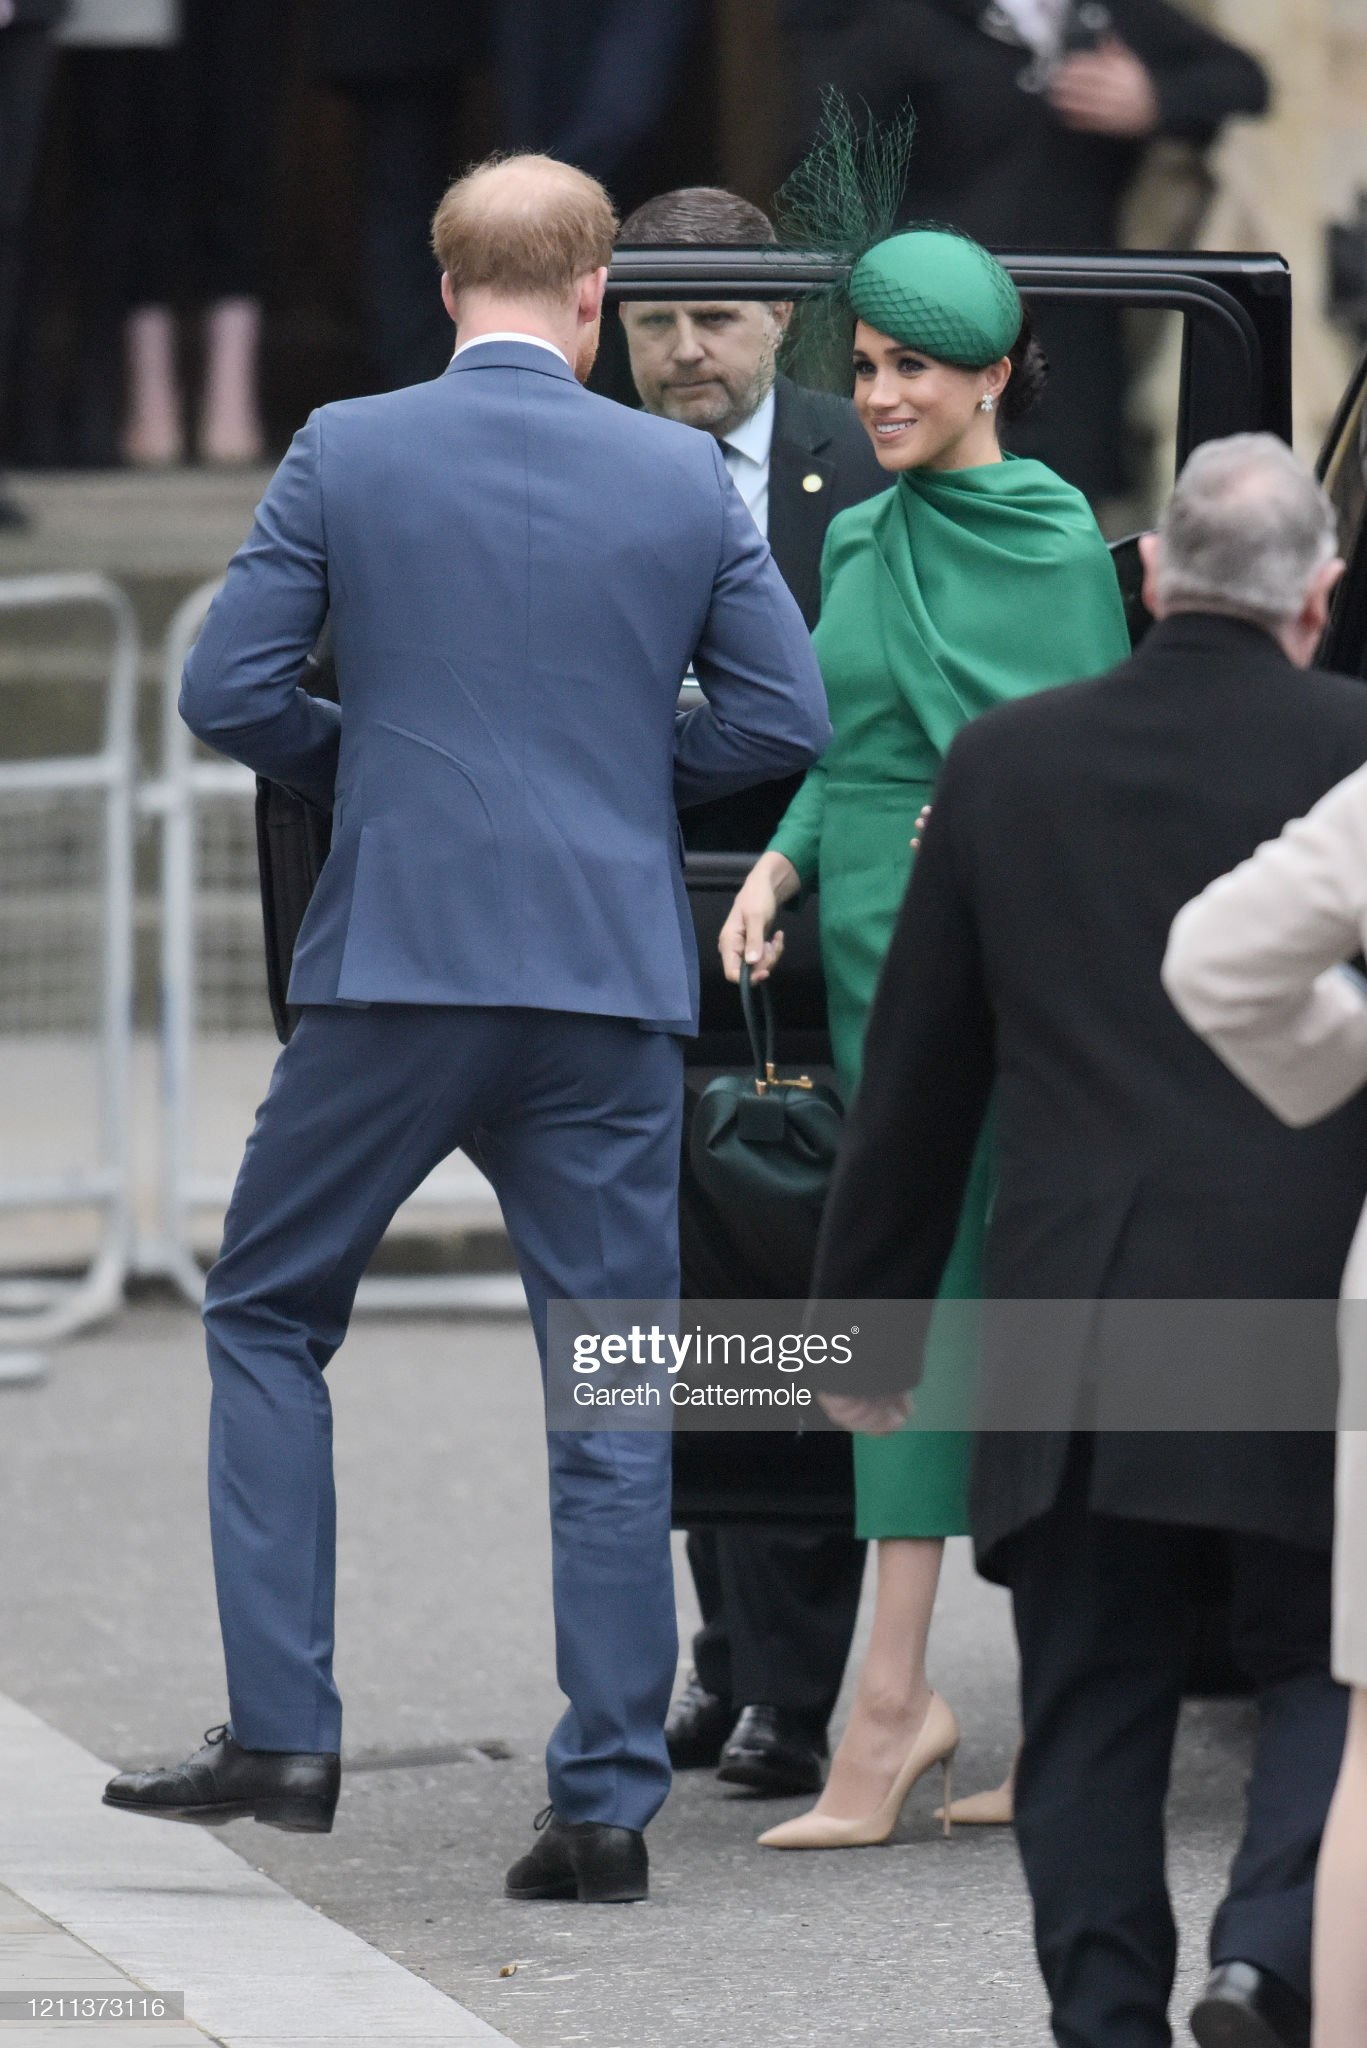 https://media.gettyimages.com/photos/prince-harry-duke-of-sussex-and-meghan-duchess-of-sussex-attend-the-picture-id1211373116?s=2048x2048